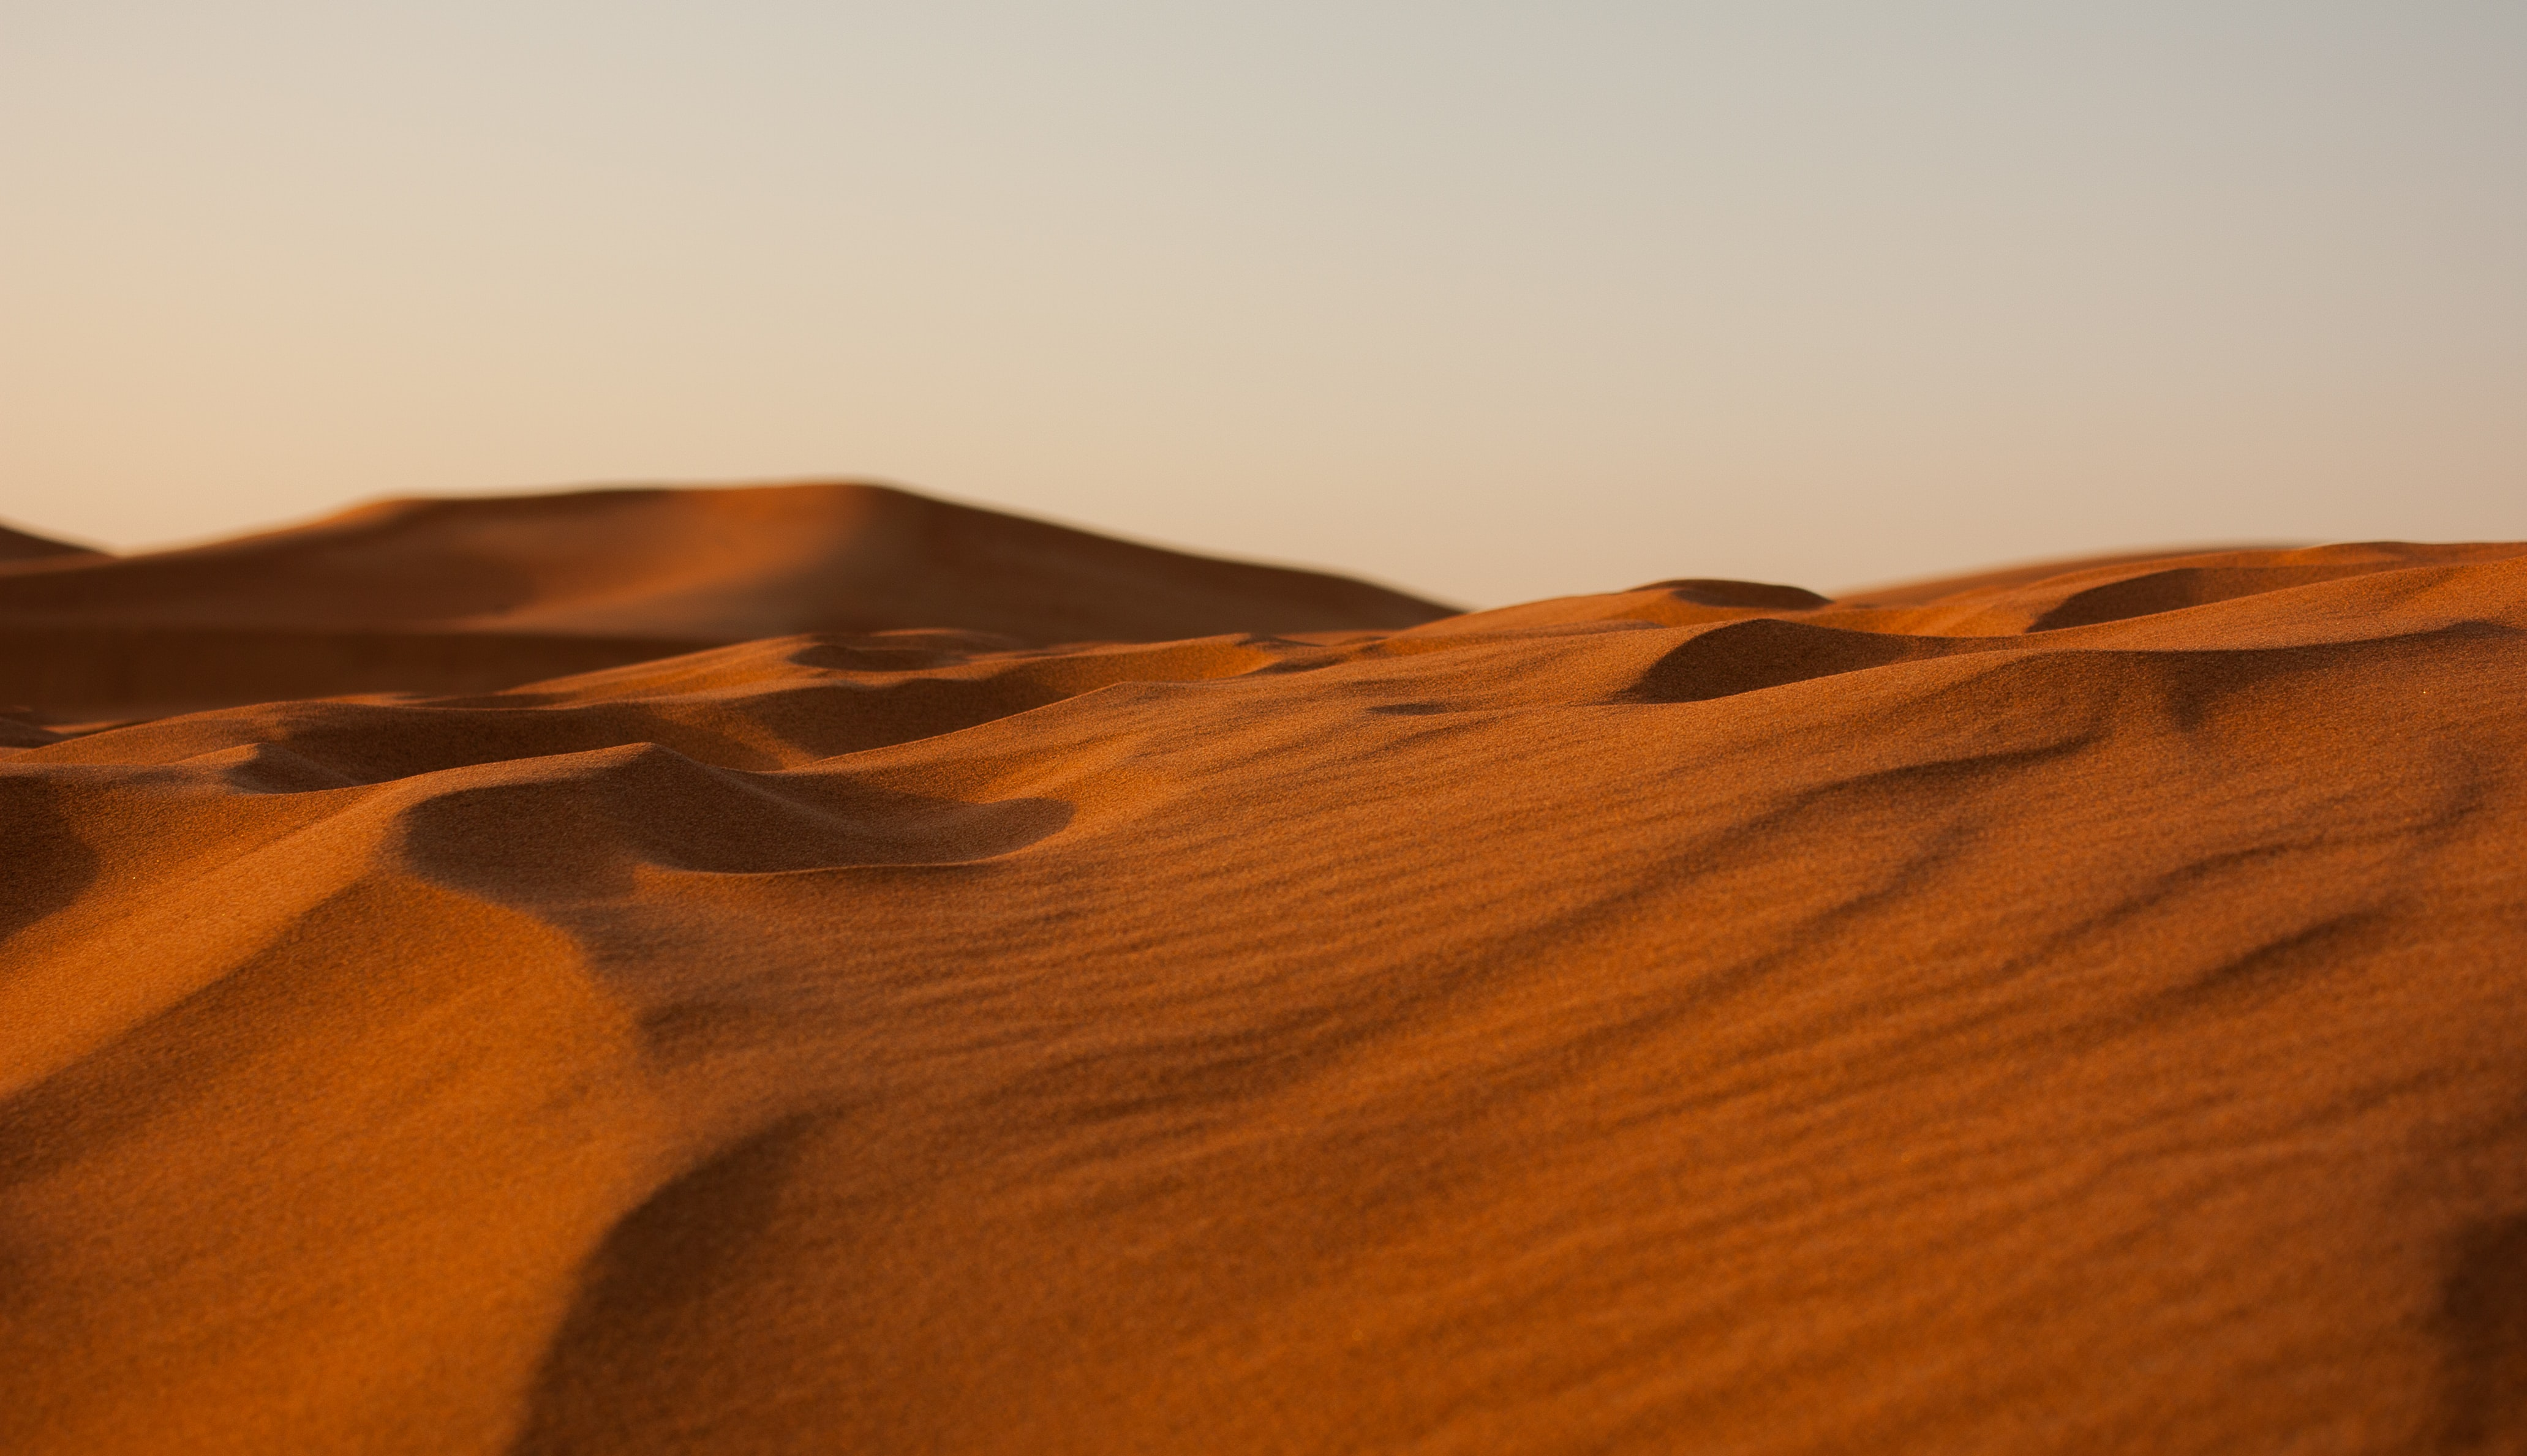 landscape photography of empty desert